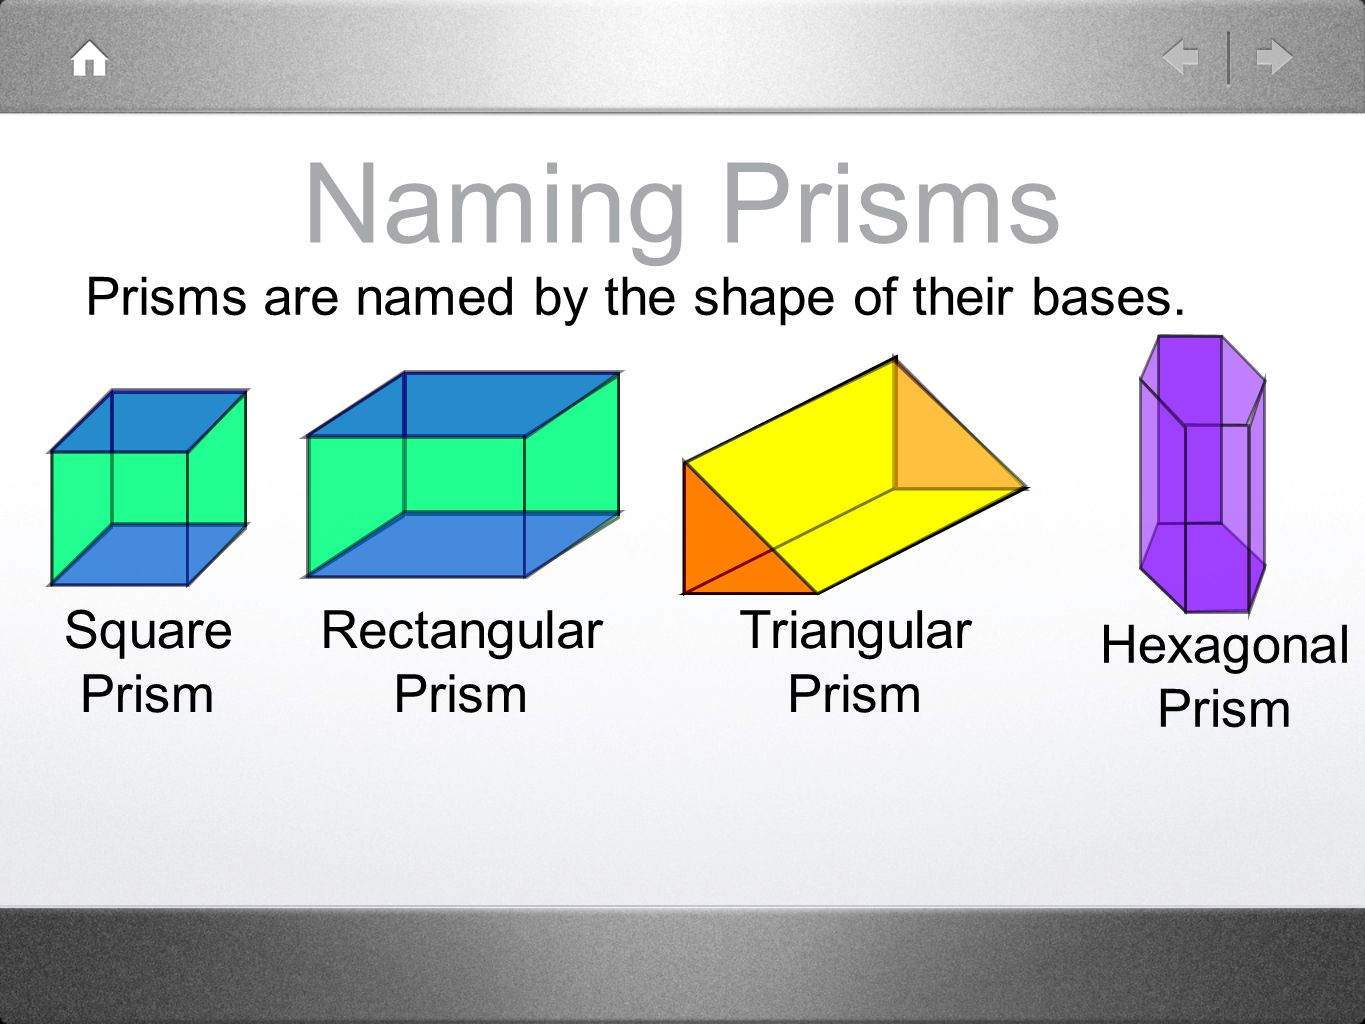 Prisms are named by the shape of their bases.